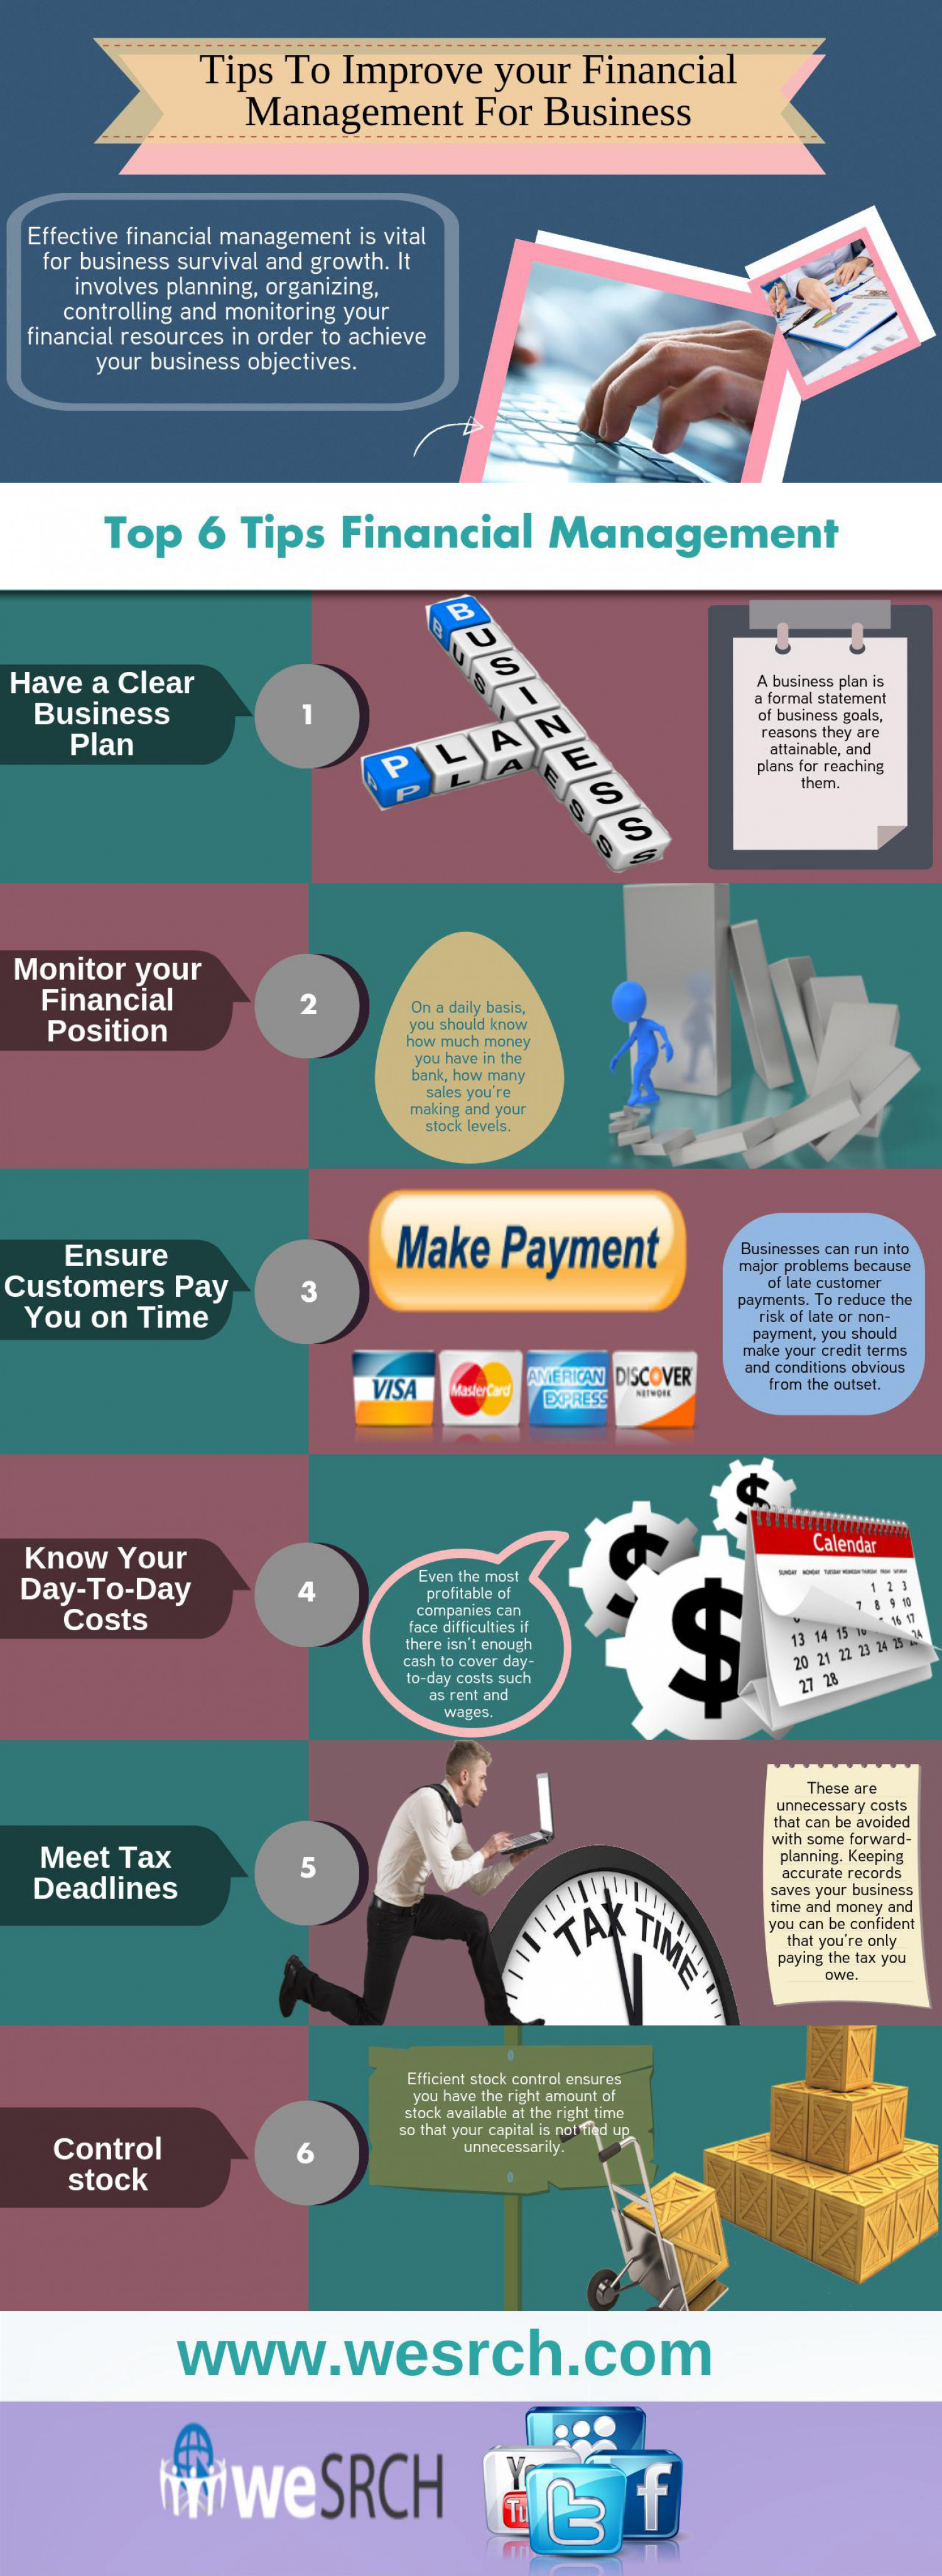 Tips To Improve your Financial Management For Business  Infographic